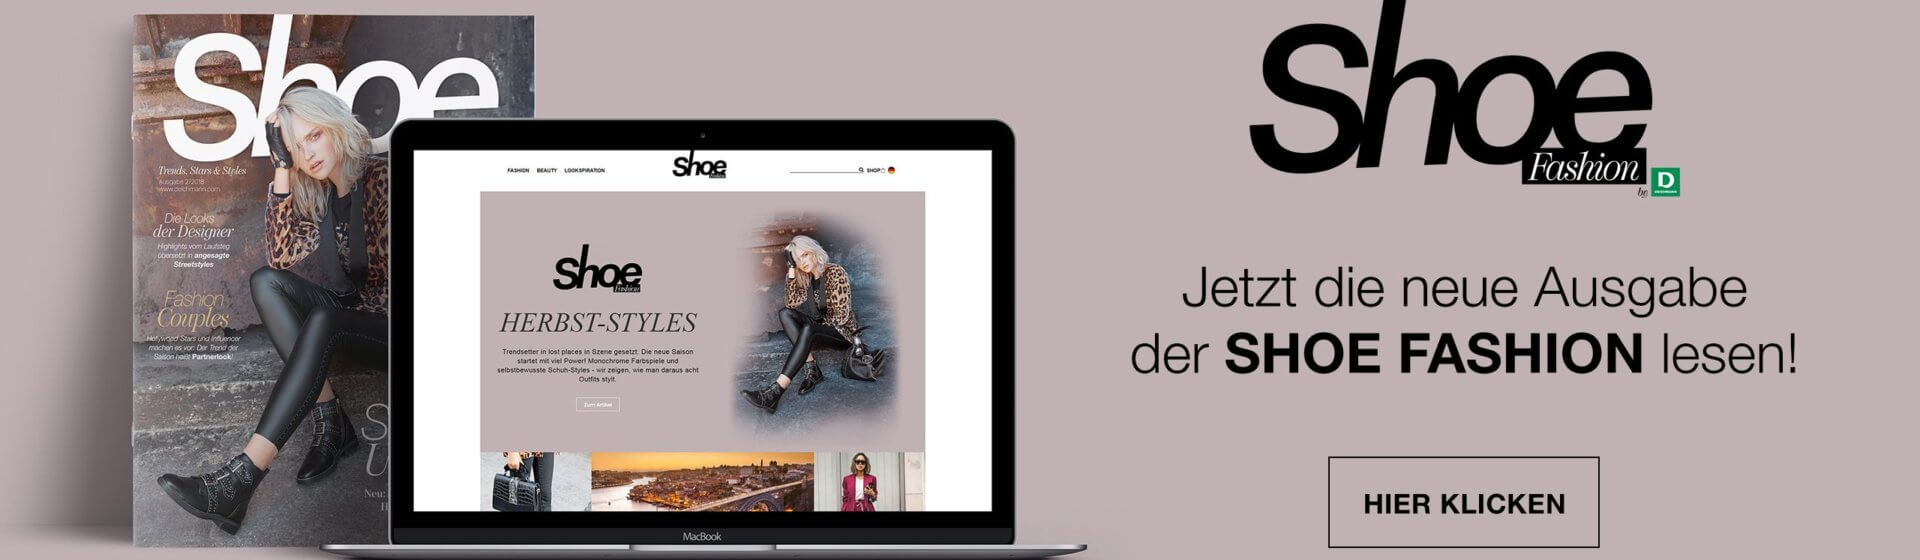 Shoe Fashion-Magazin jetz im Shoelove-Blog